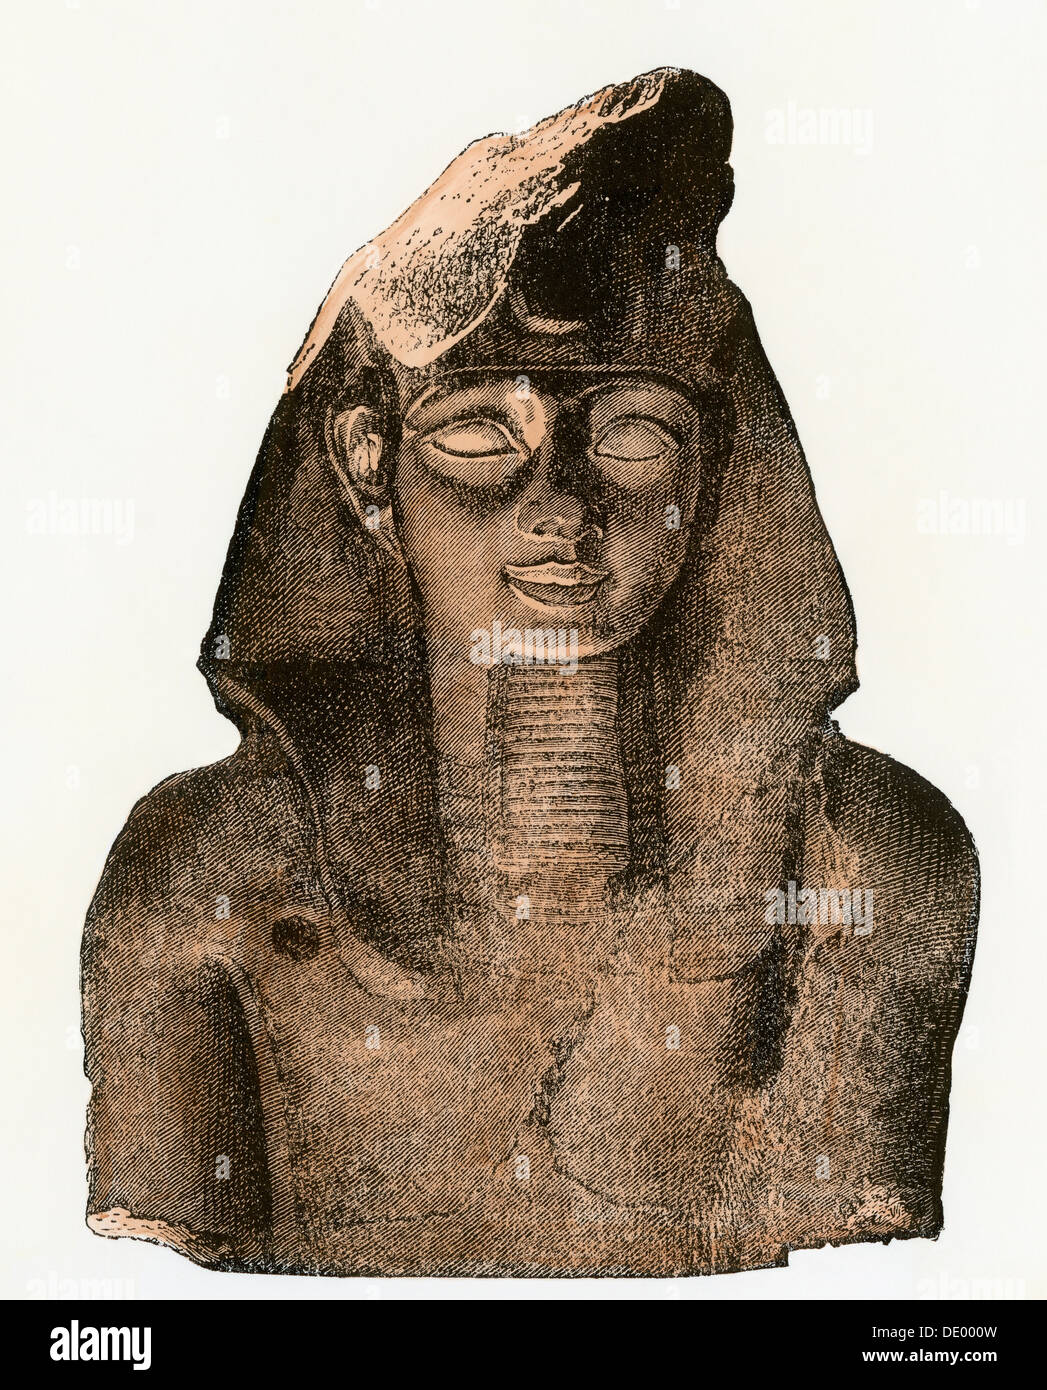 Bust of Pharaoh Ramses II, 13th century BC. Hand-colored woodcut - Stock Image